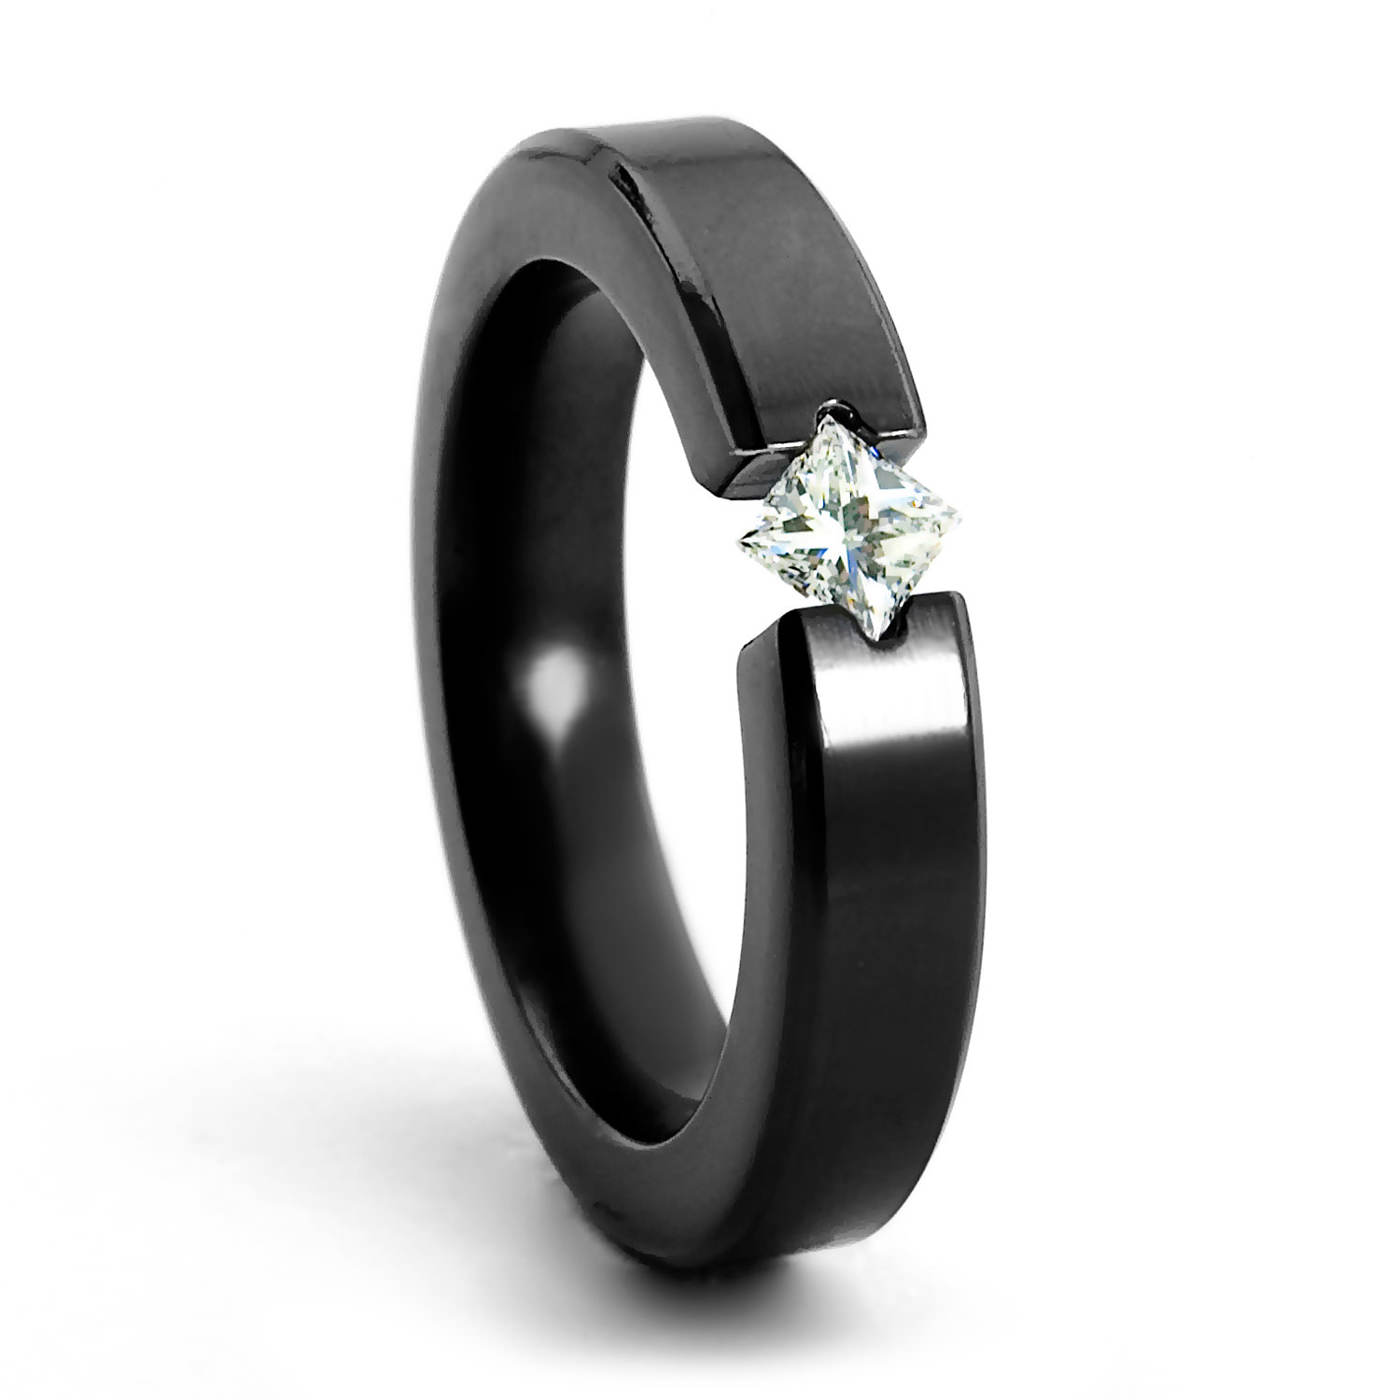 Tire Wedding Rings >> Black Titanium Rings For Women | www.pixshark.com - Images Galleries With A Bite!